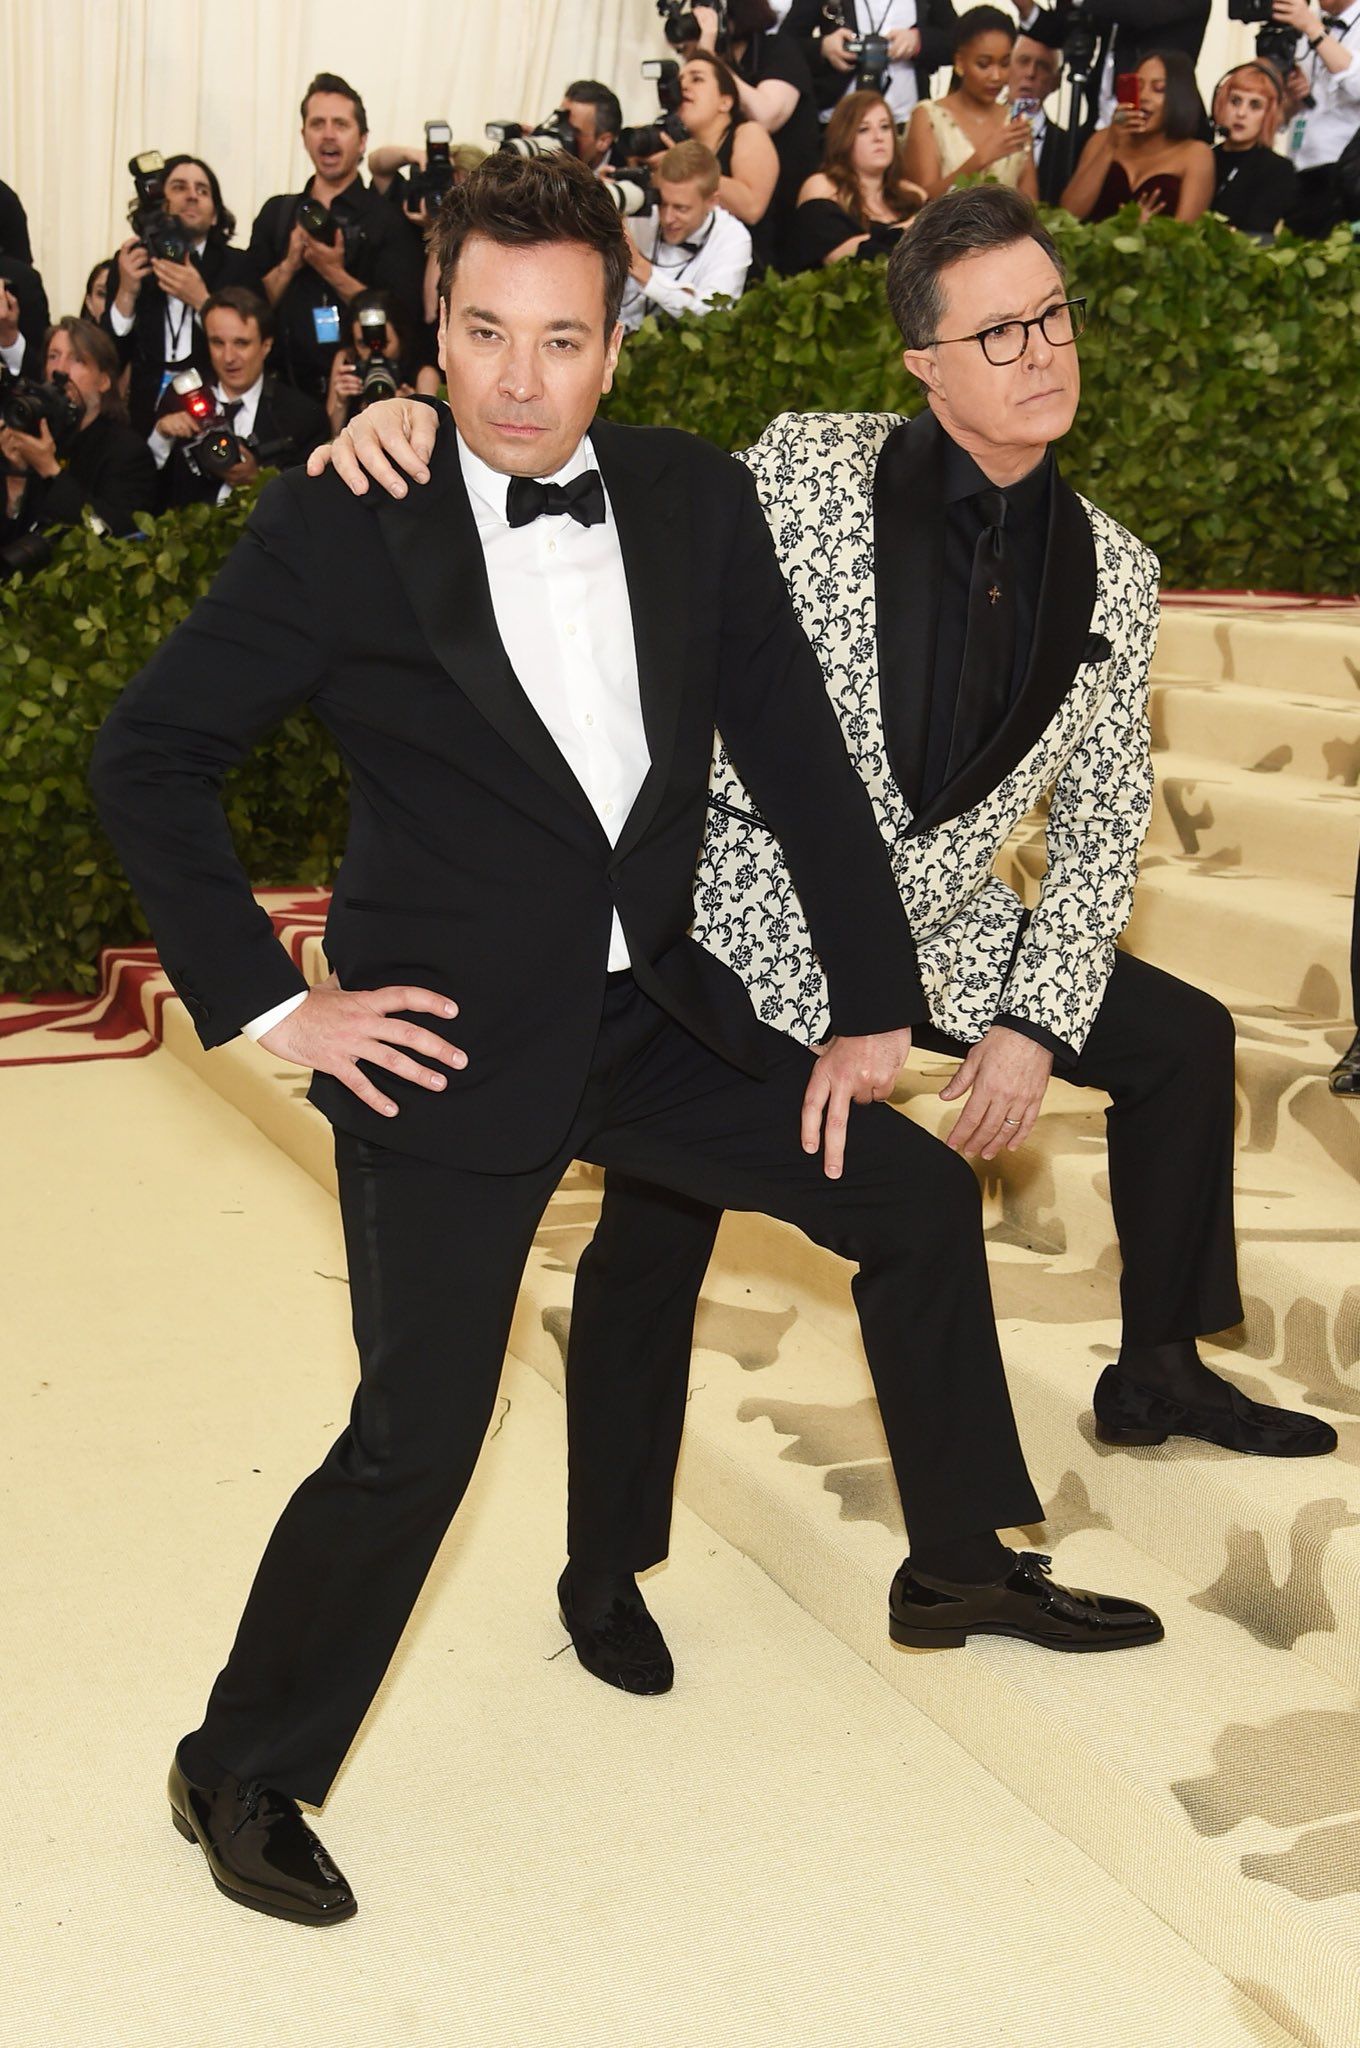 Don't be surprised if you see two professional models on the red carpet of the #MetGala. https://t.co/pYzpONmNDv